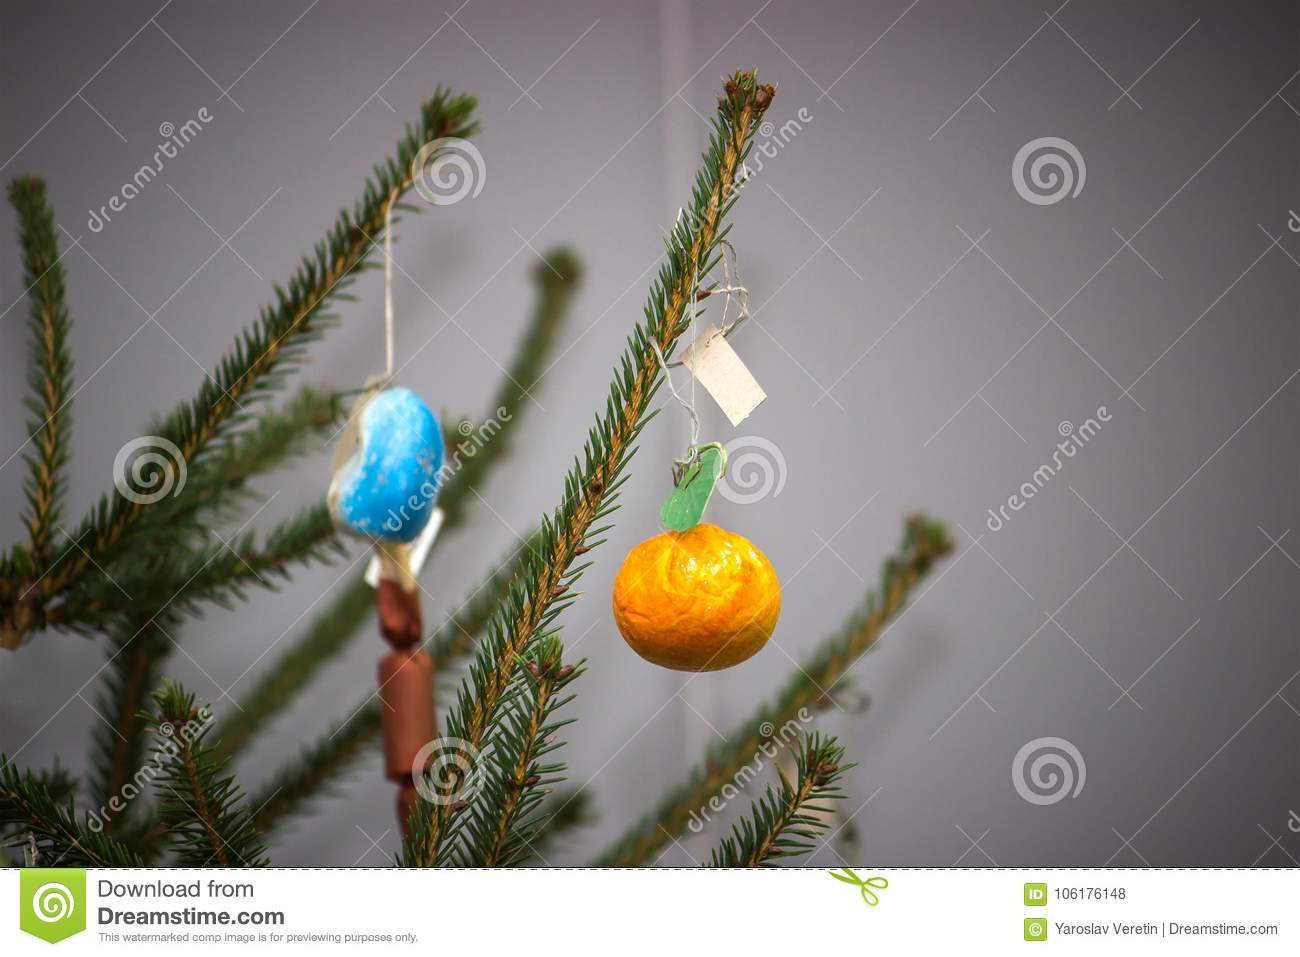 Christmas tree with baubles on dark background.